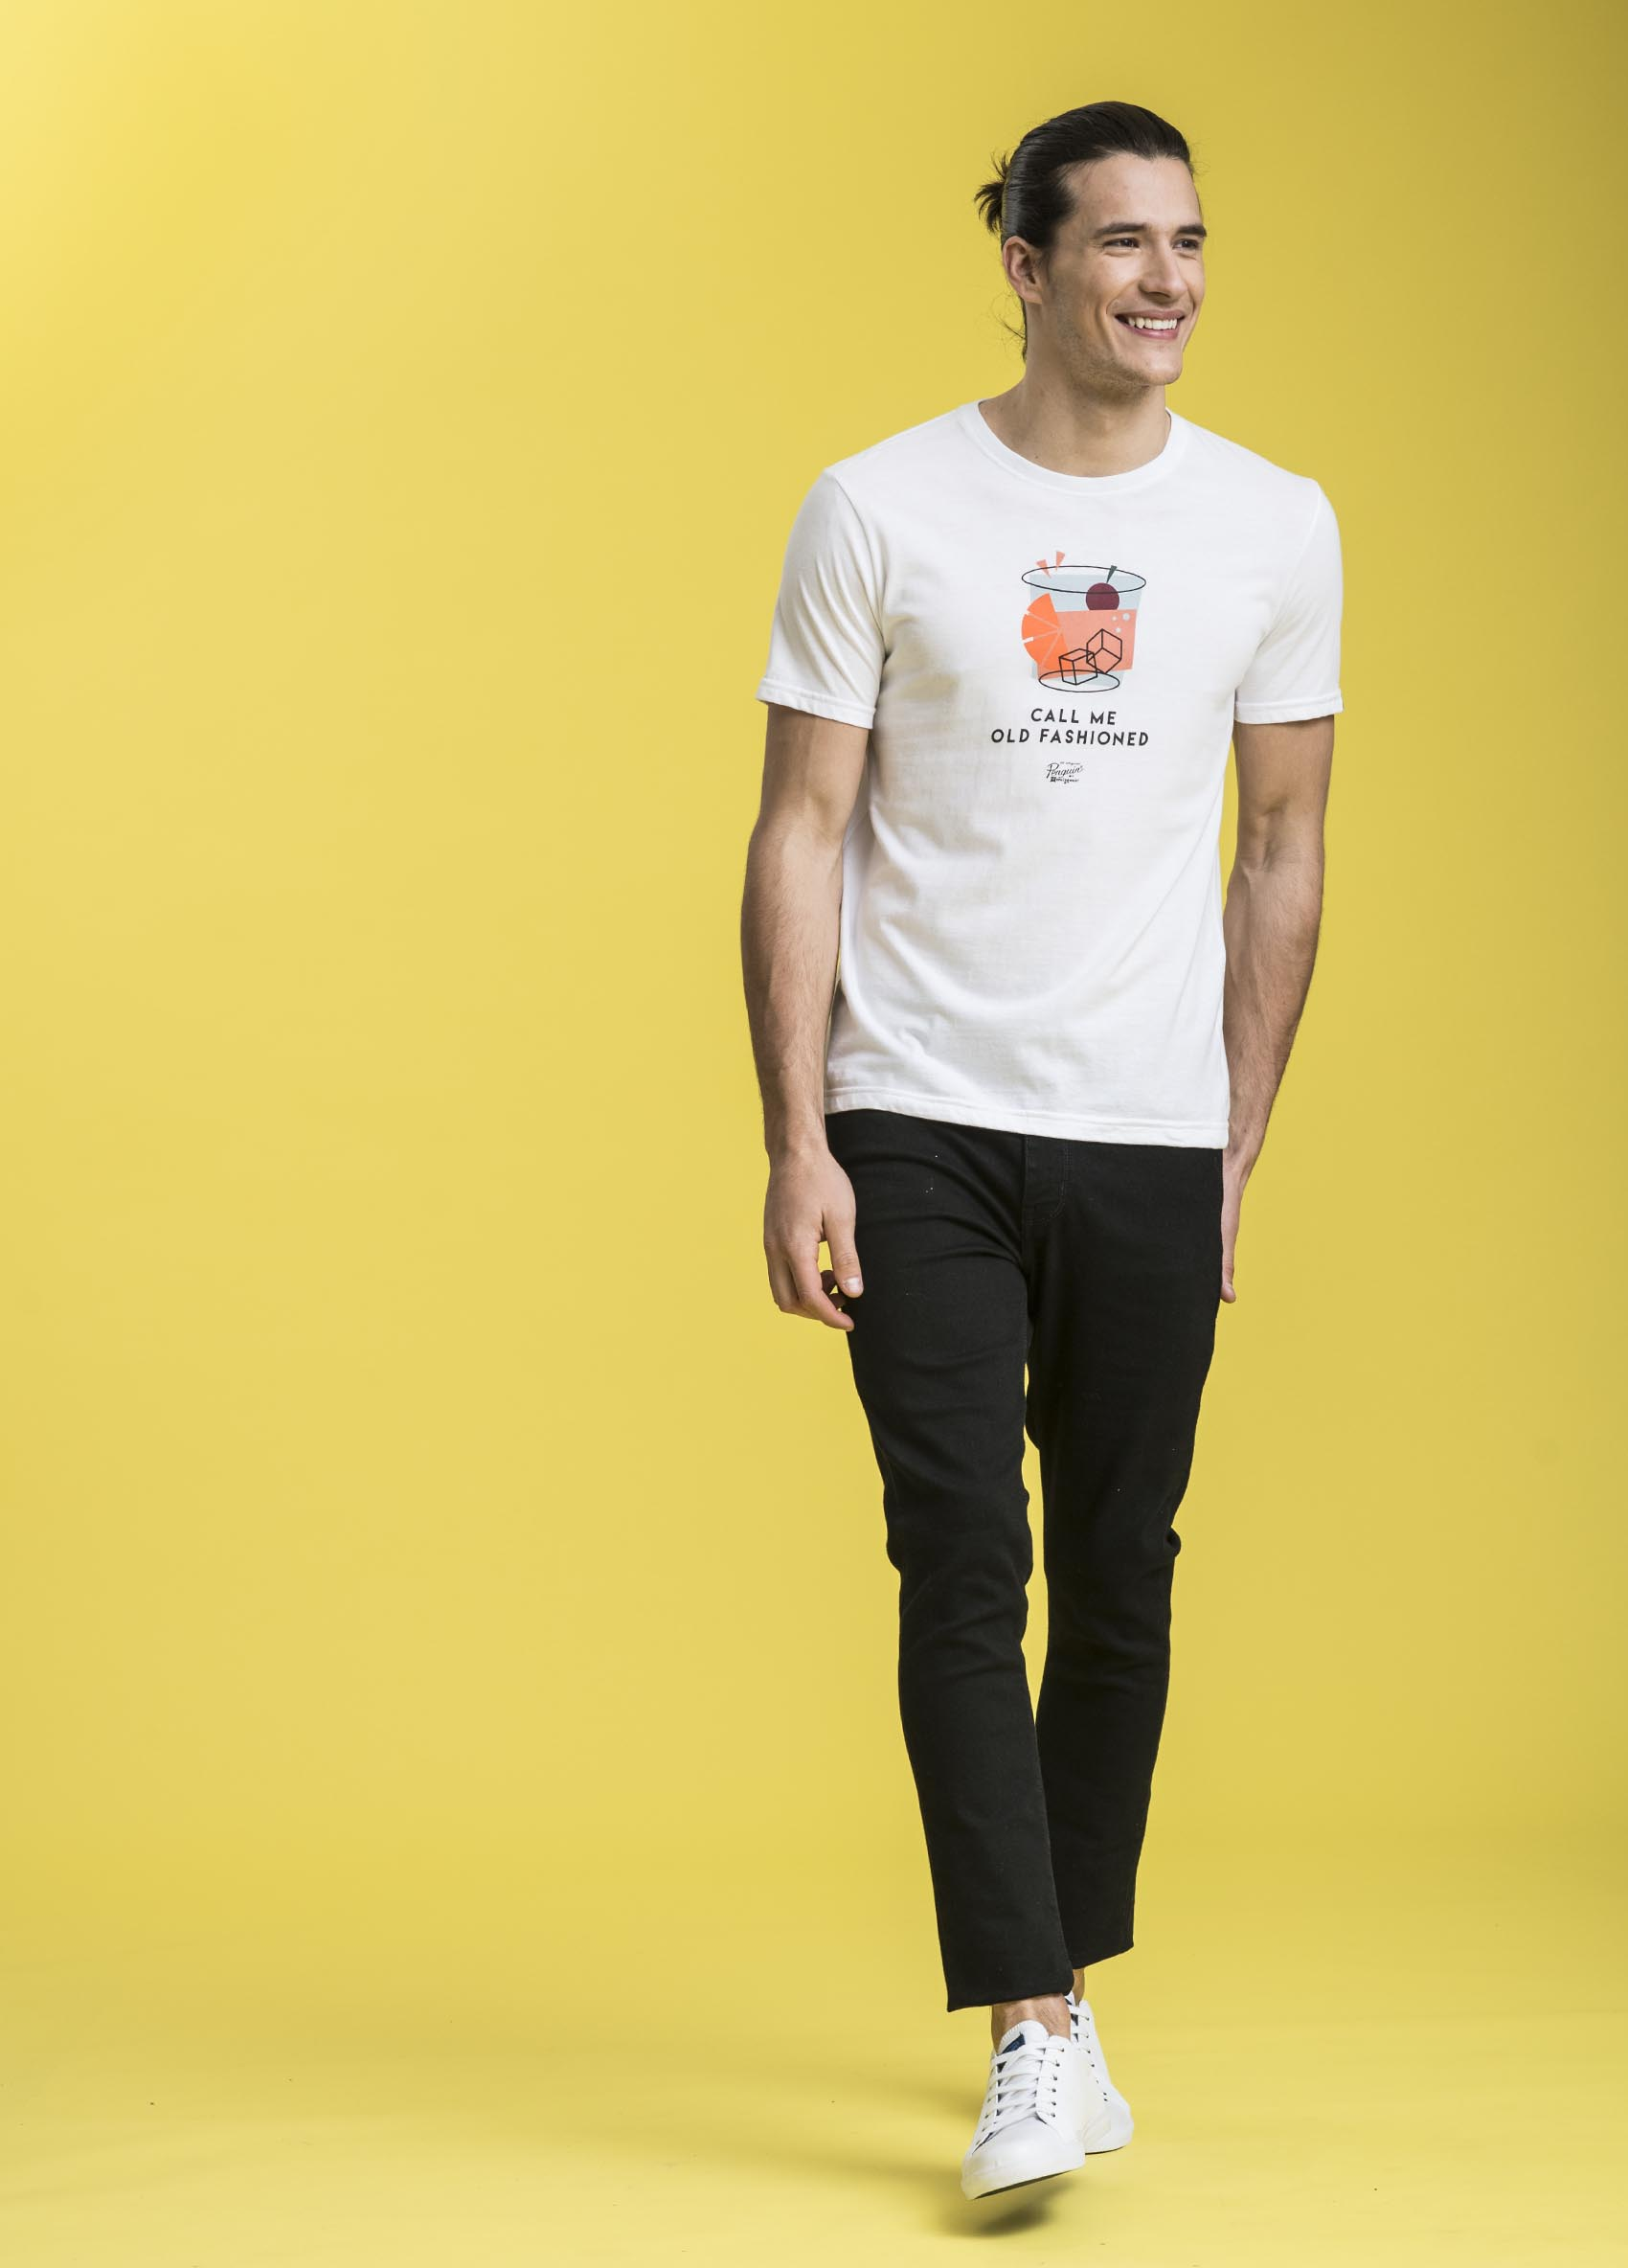 penguin_call-me-old-fashioned-tee_35-25-2019__picture-12149